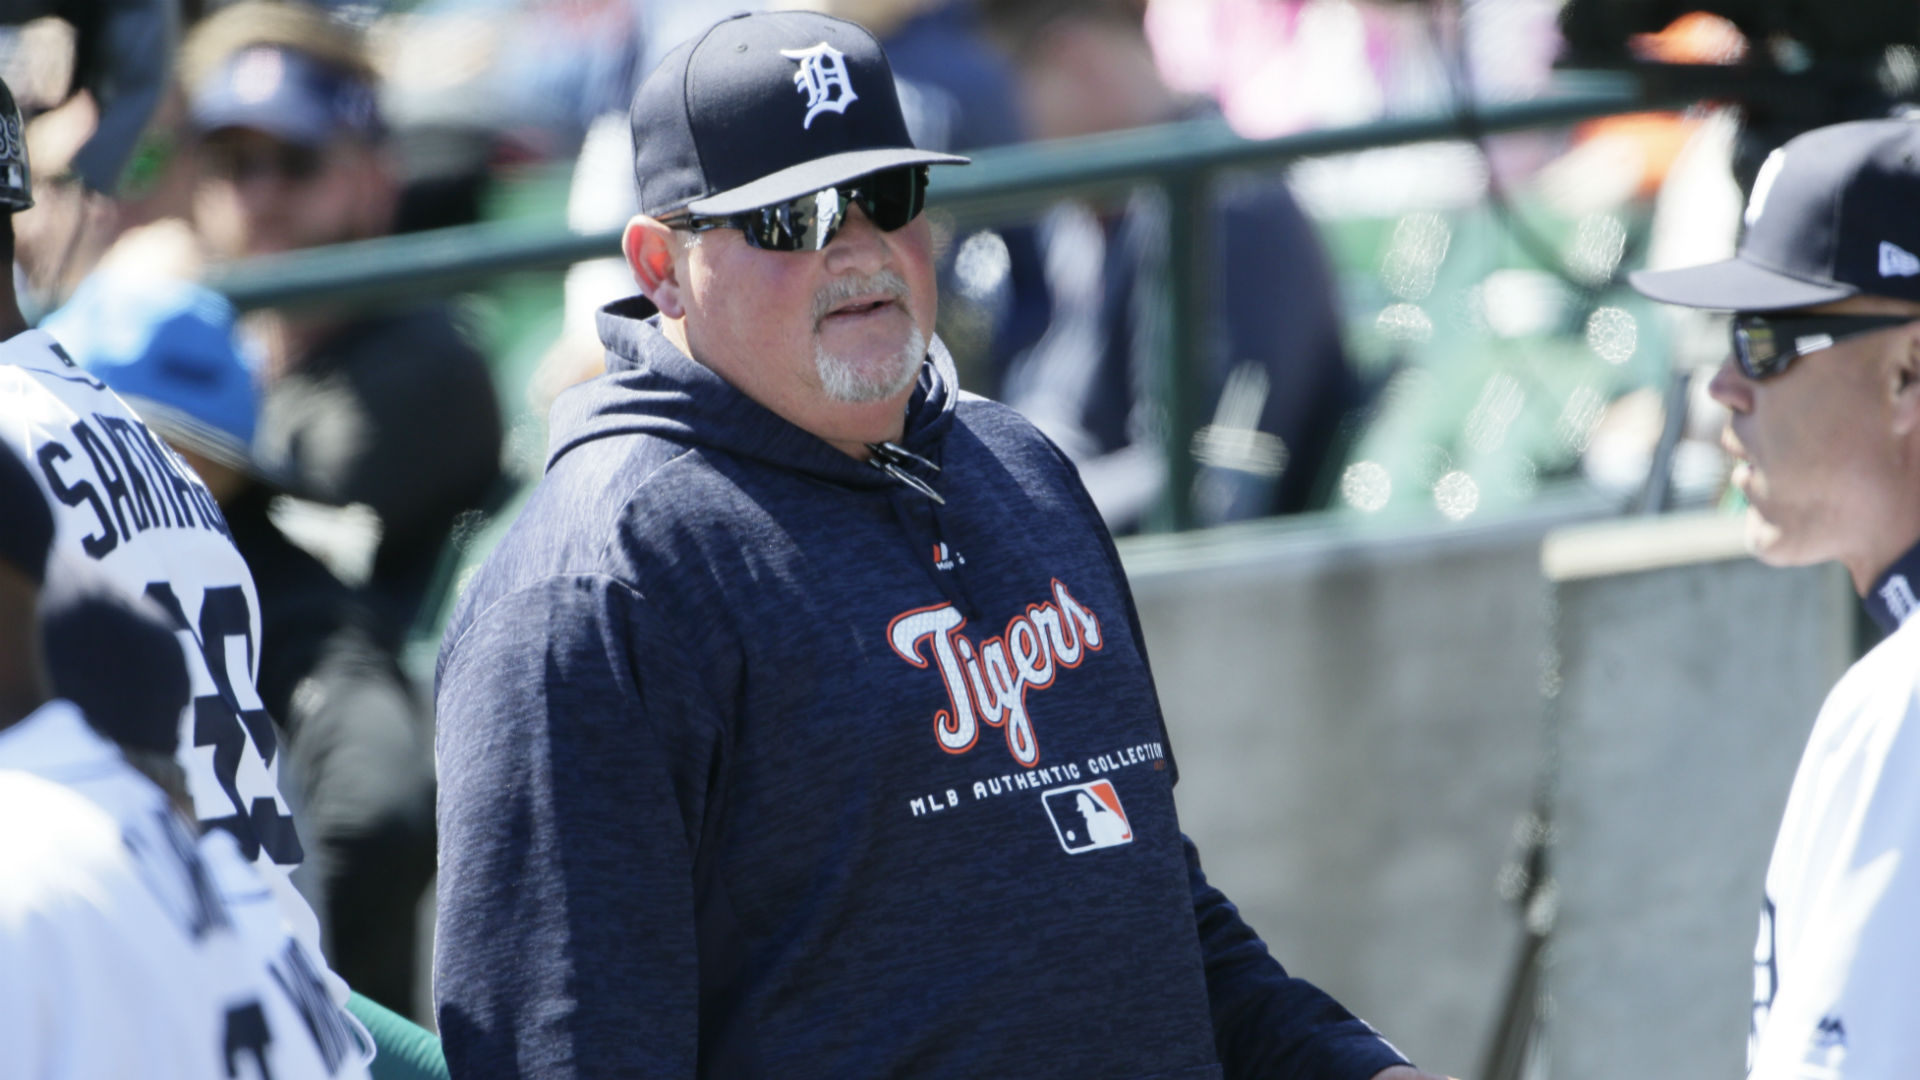 Tigers fire pitching coach Bosio over 'insensitive comments'